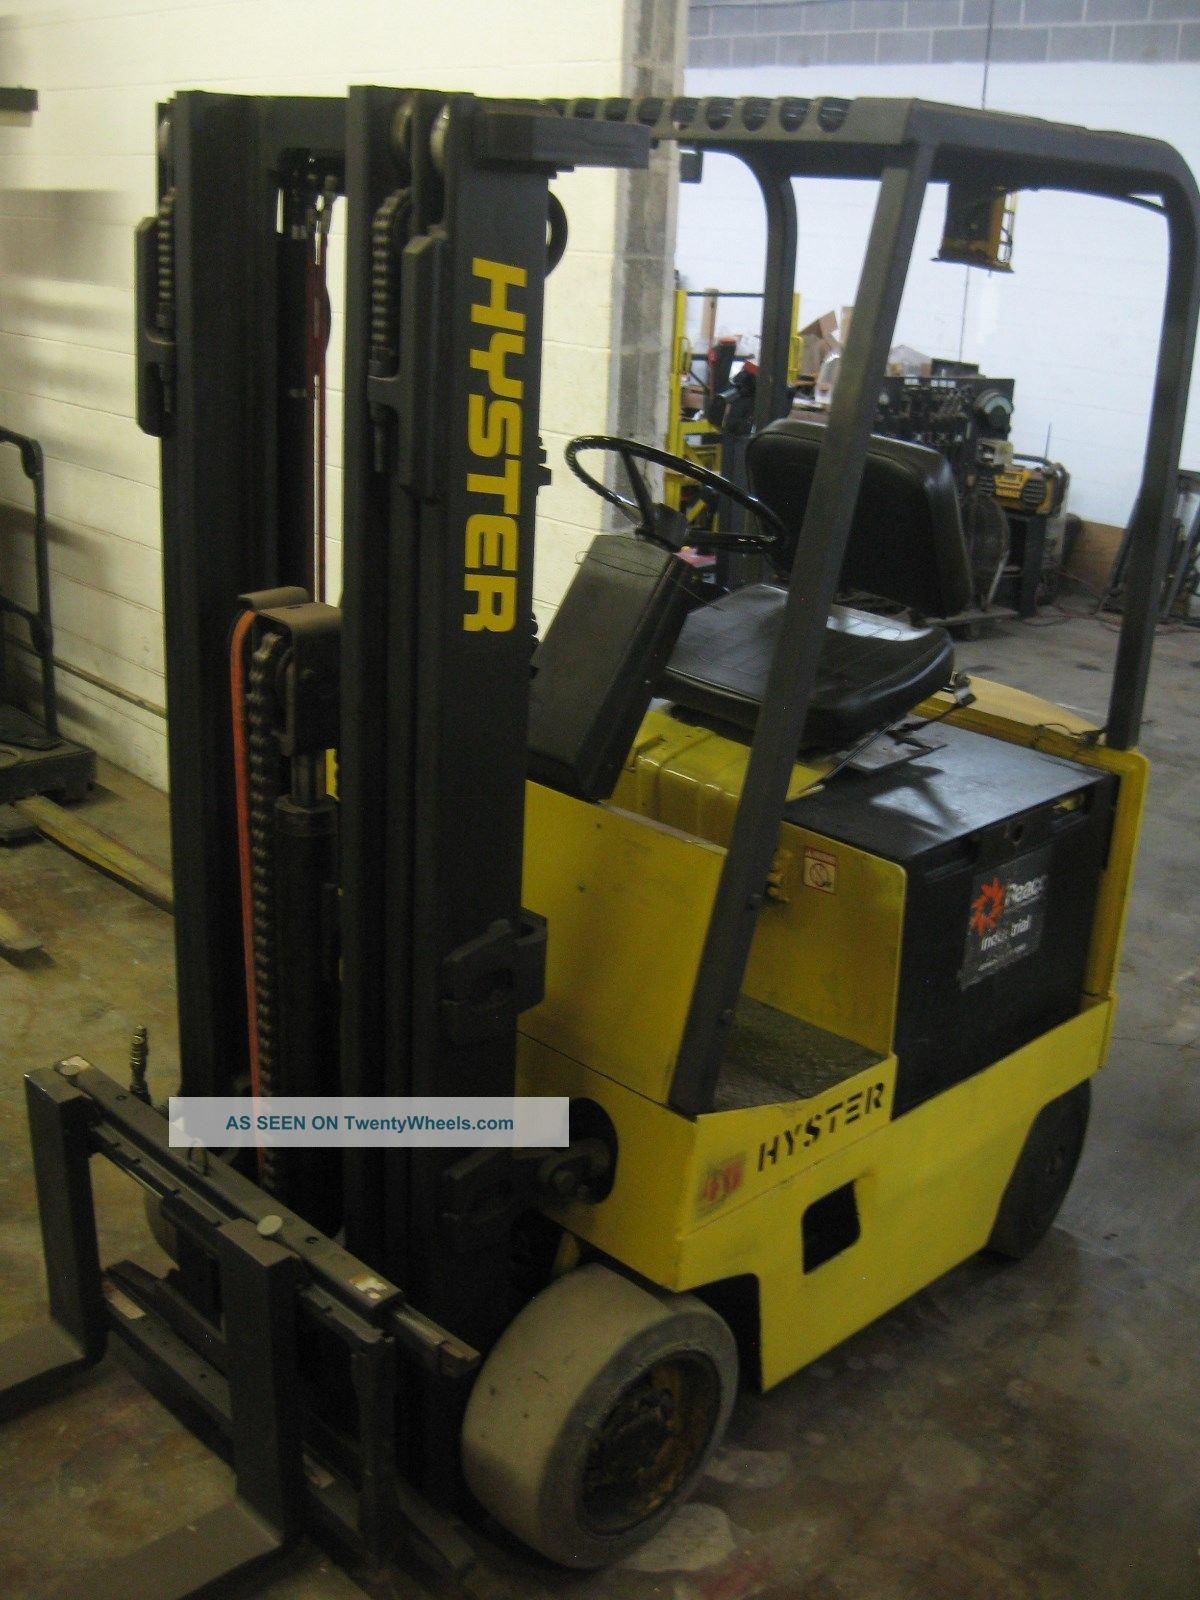 Hyster Electric Forklift 4 000 Cap 3 Stage Mast Good